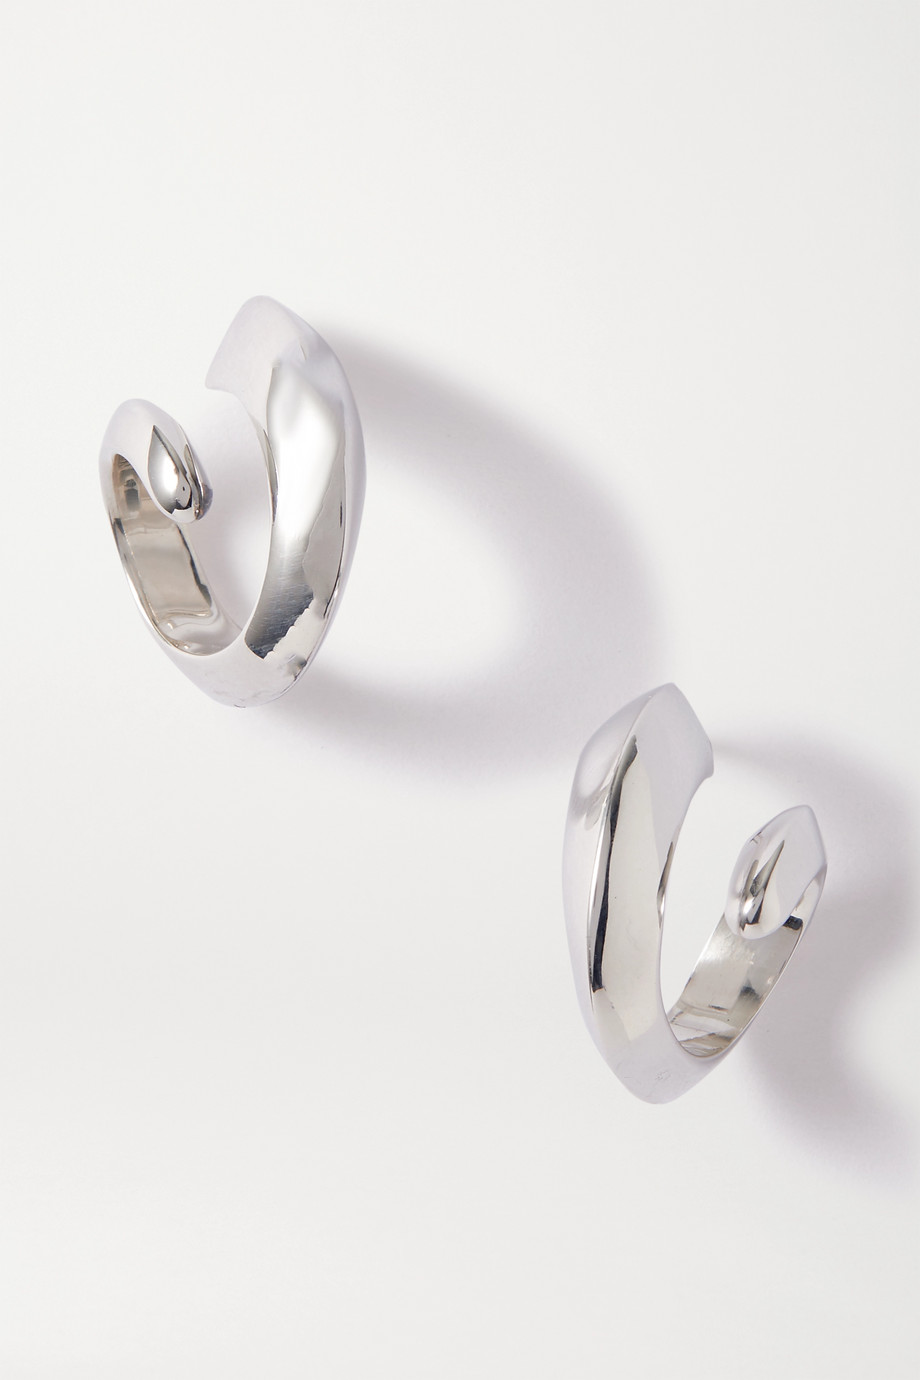 Bottega Veneta Silver-tone earrings